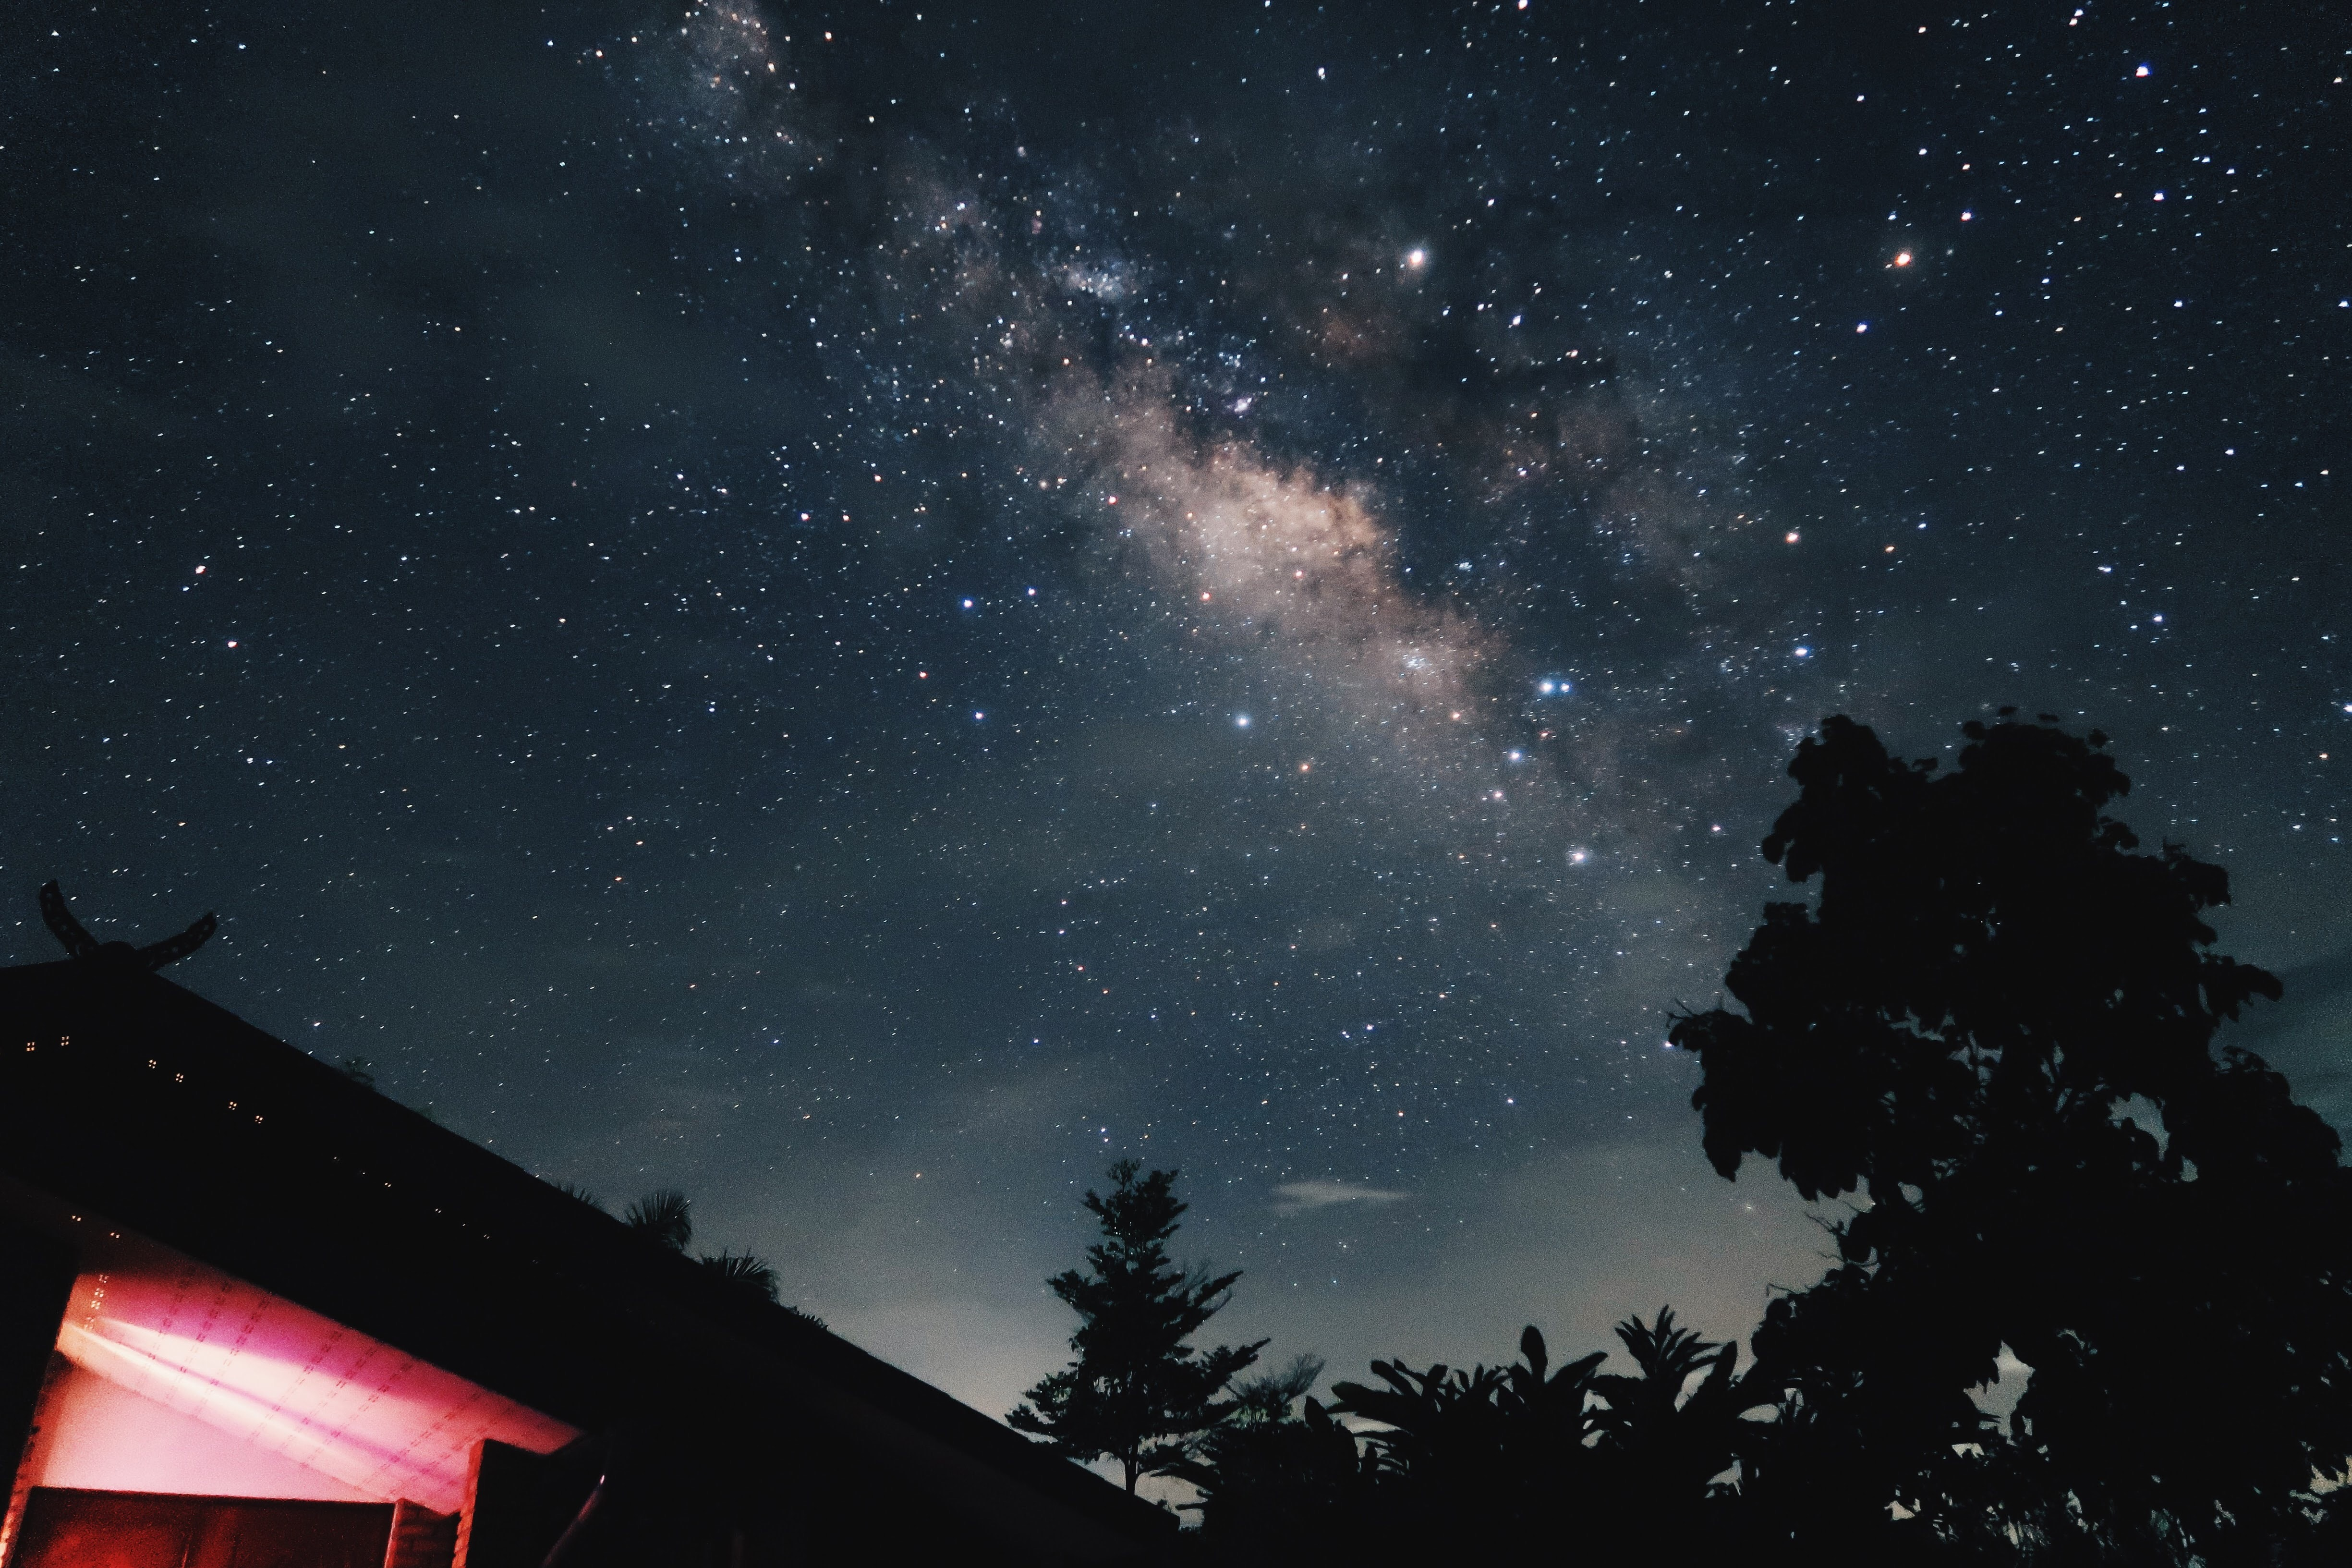 worm's-eye view of house beside tree under starry night